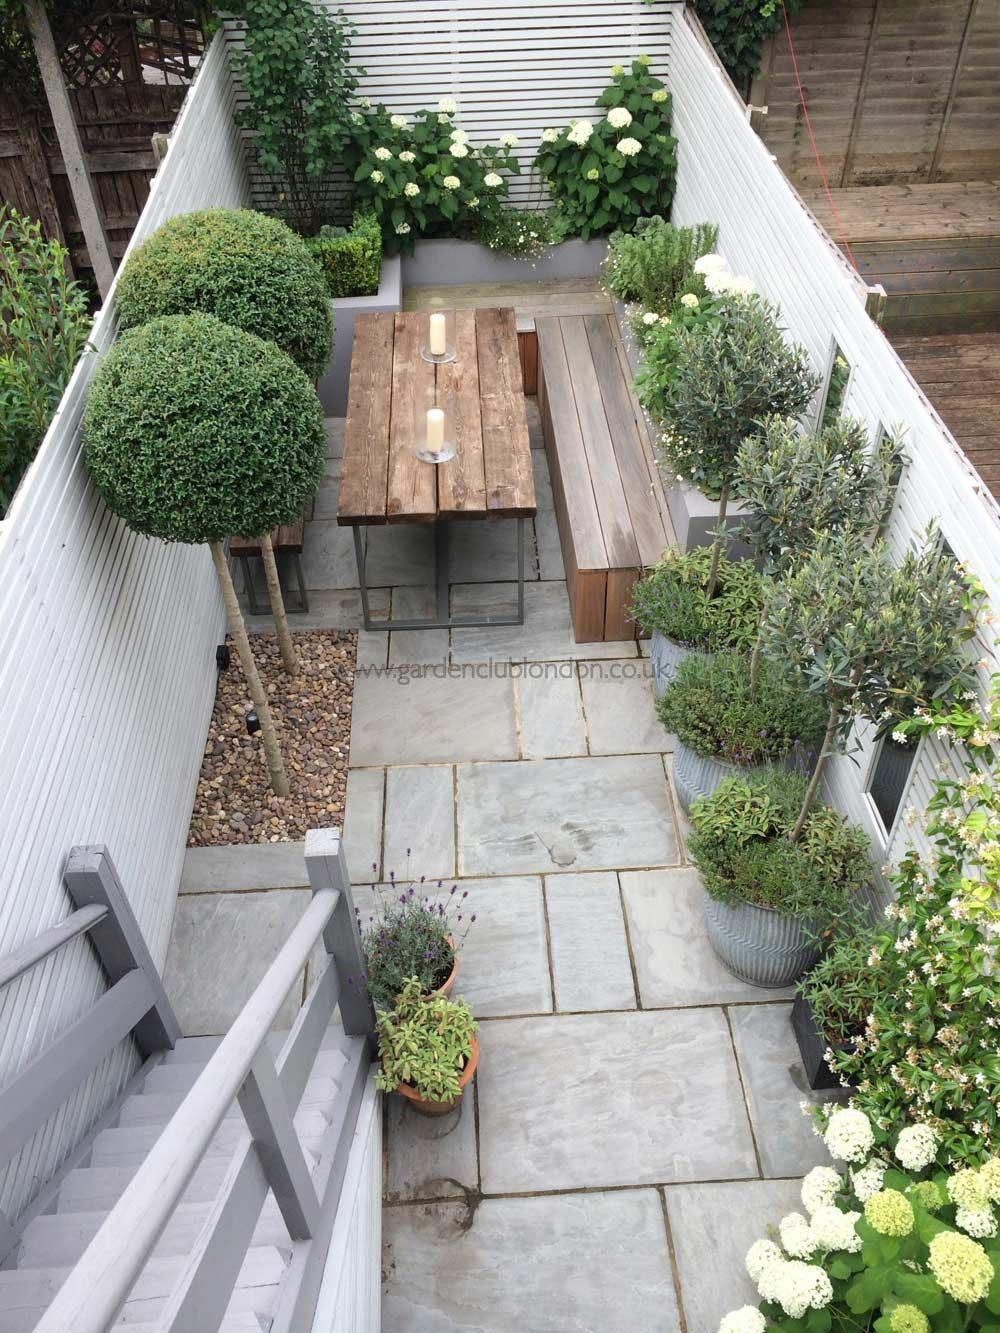 inspiration garden pinterest garden garden design and backyard rh pinterest com